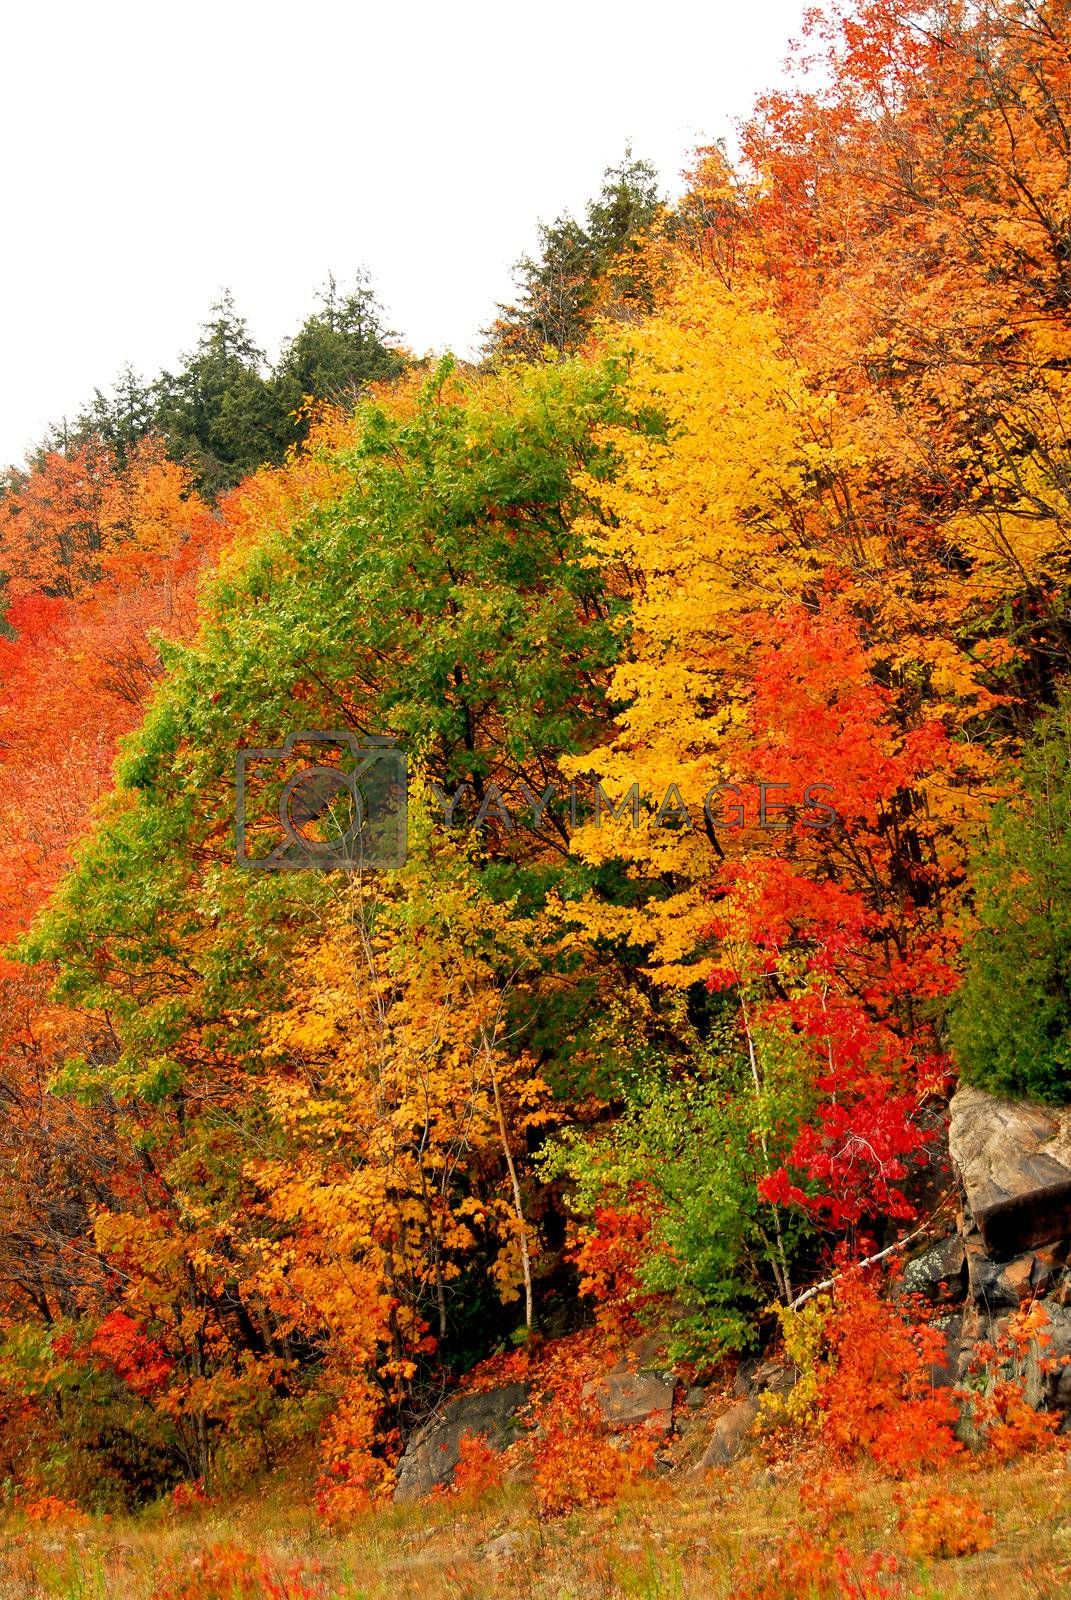 Colorful yellow and red fall forest background